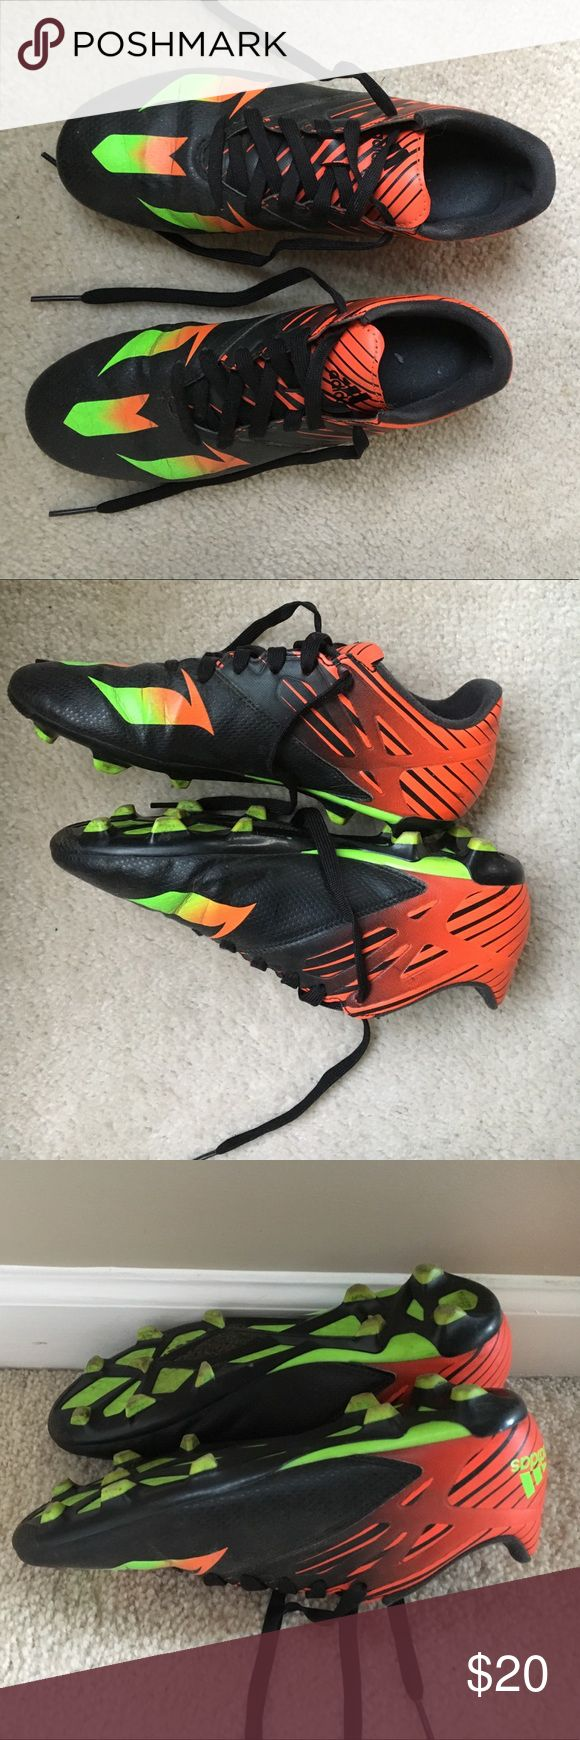 Boys Adidas soccer cleats sz 6 Orange black and fluorescent green-ish yellow cleats. My son wore these a handful of times. adidas Shoes